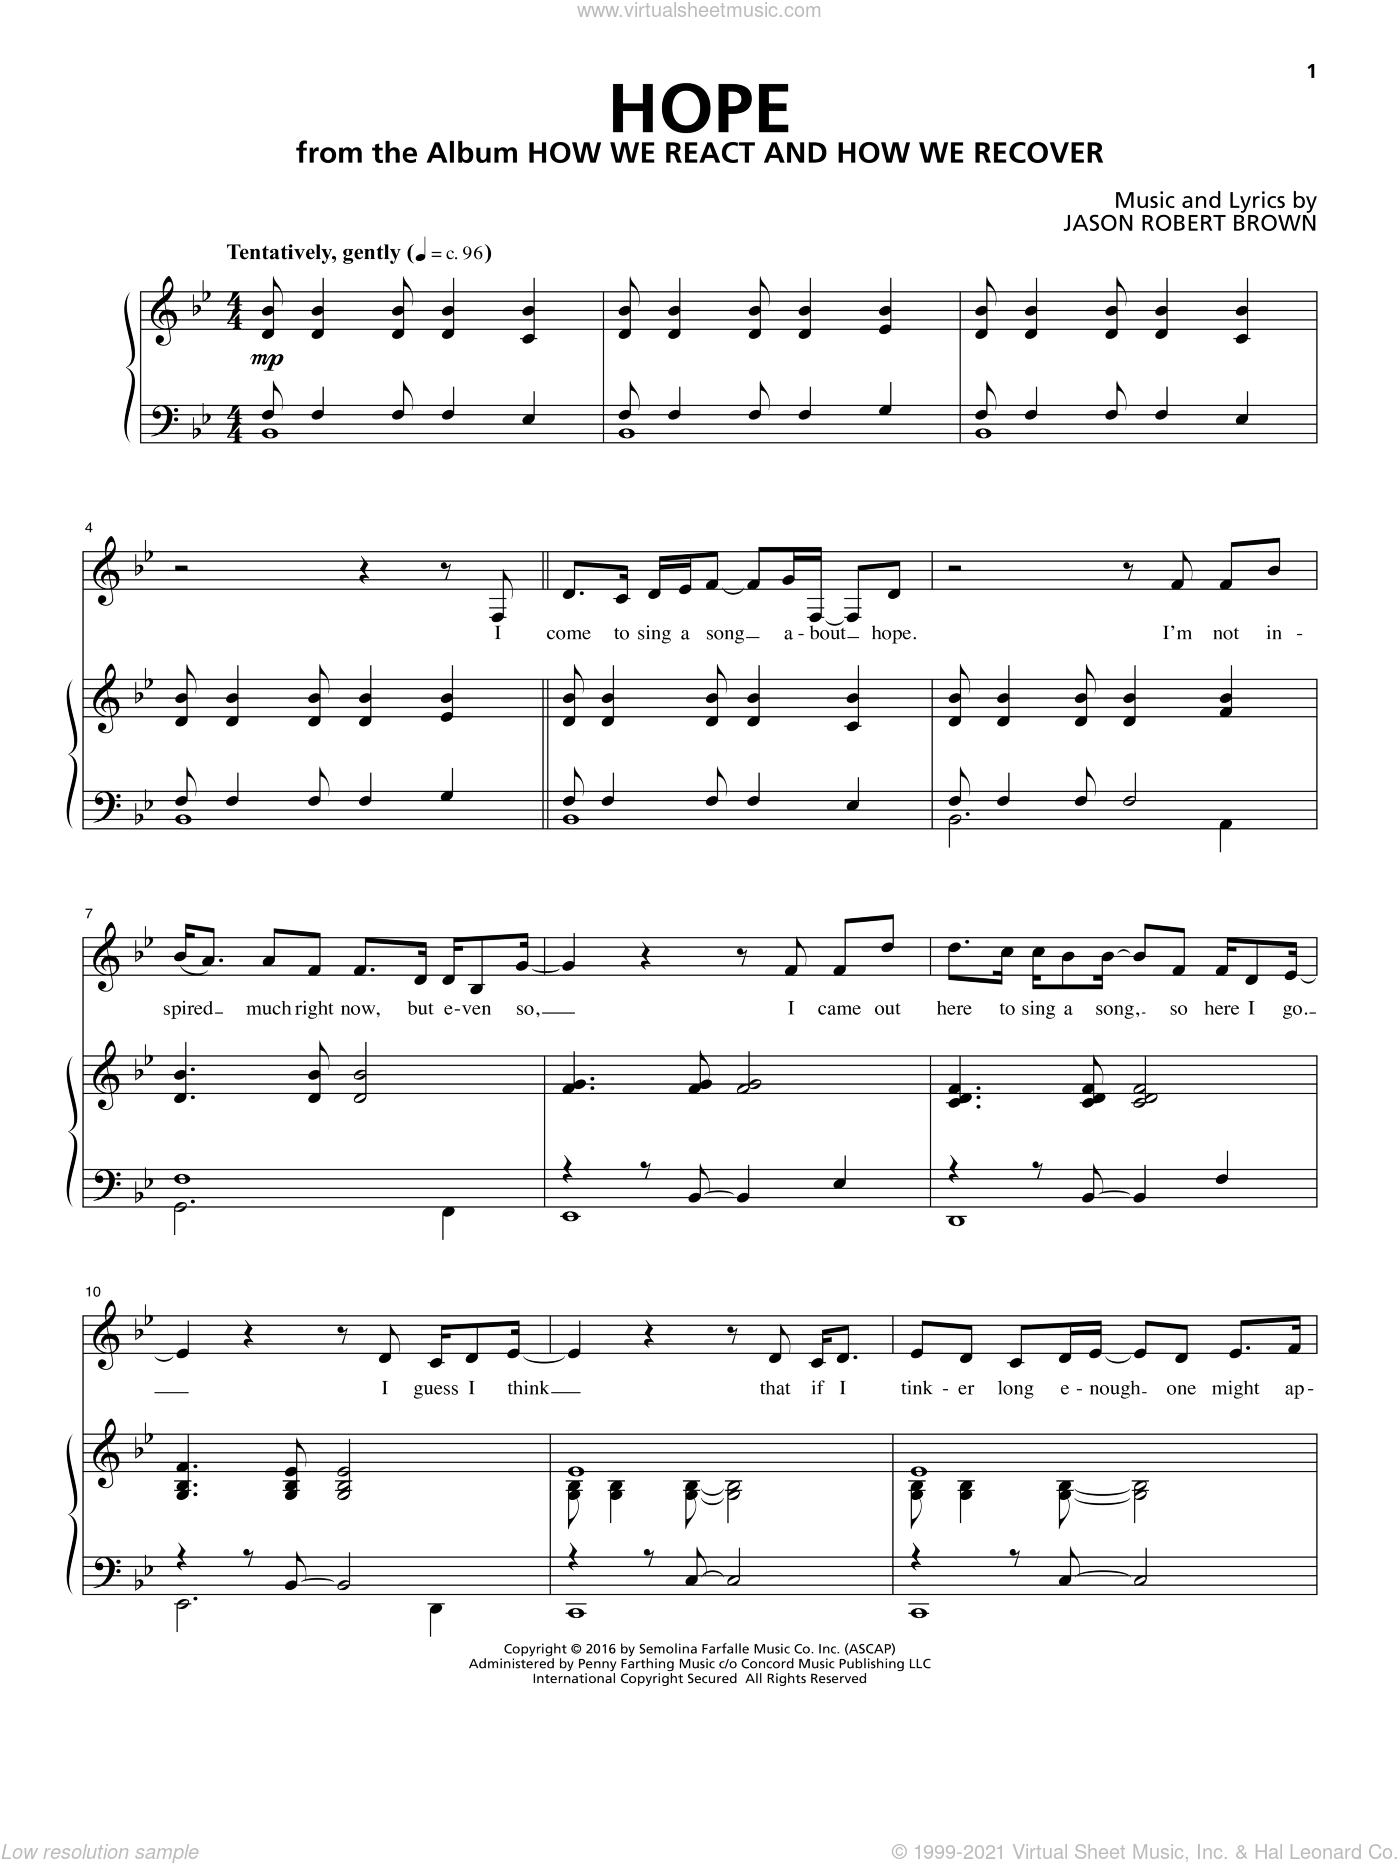 Hope (from How We React And How We Recover) sheet music for voice and piano by Jason Robert Brown, intermediate skill level